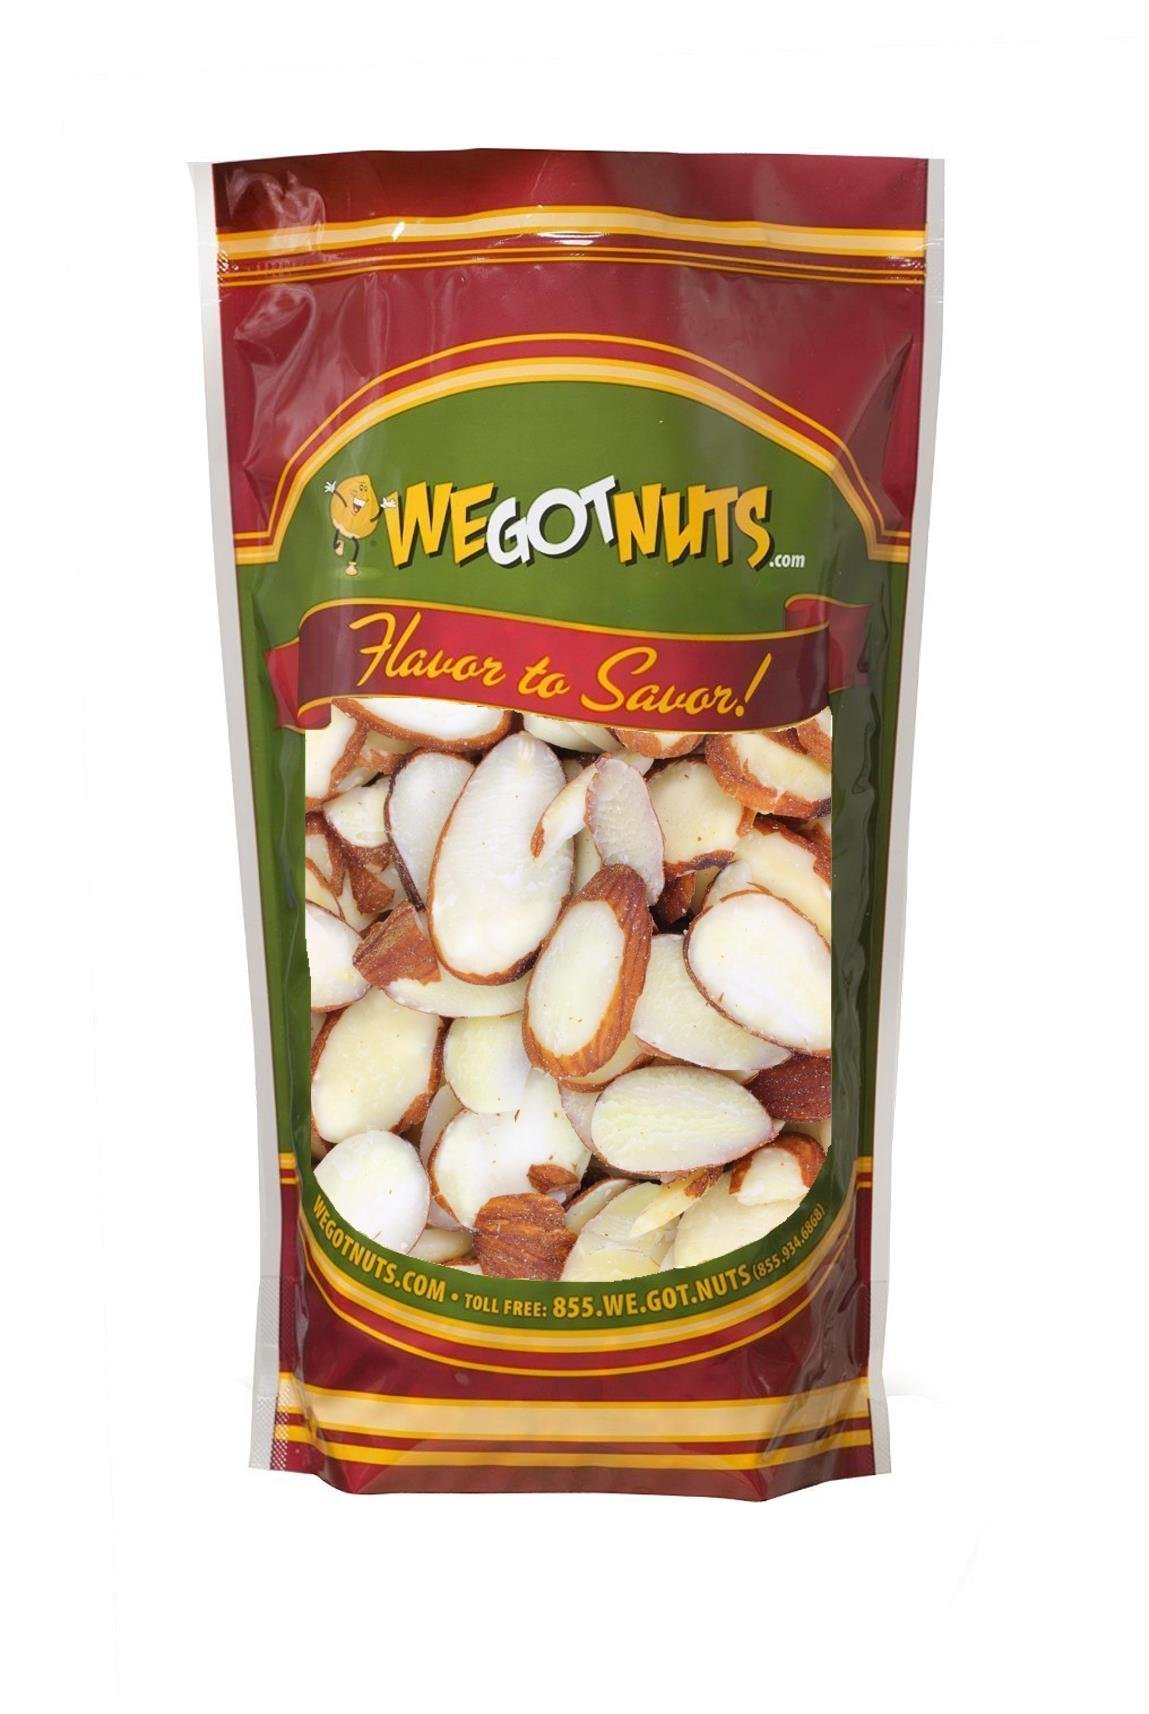 We Got Nuts Sliced Raw Almonds 3 Lbs in Resealable Bag